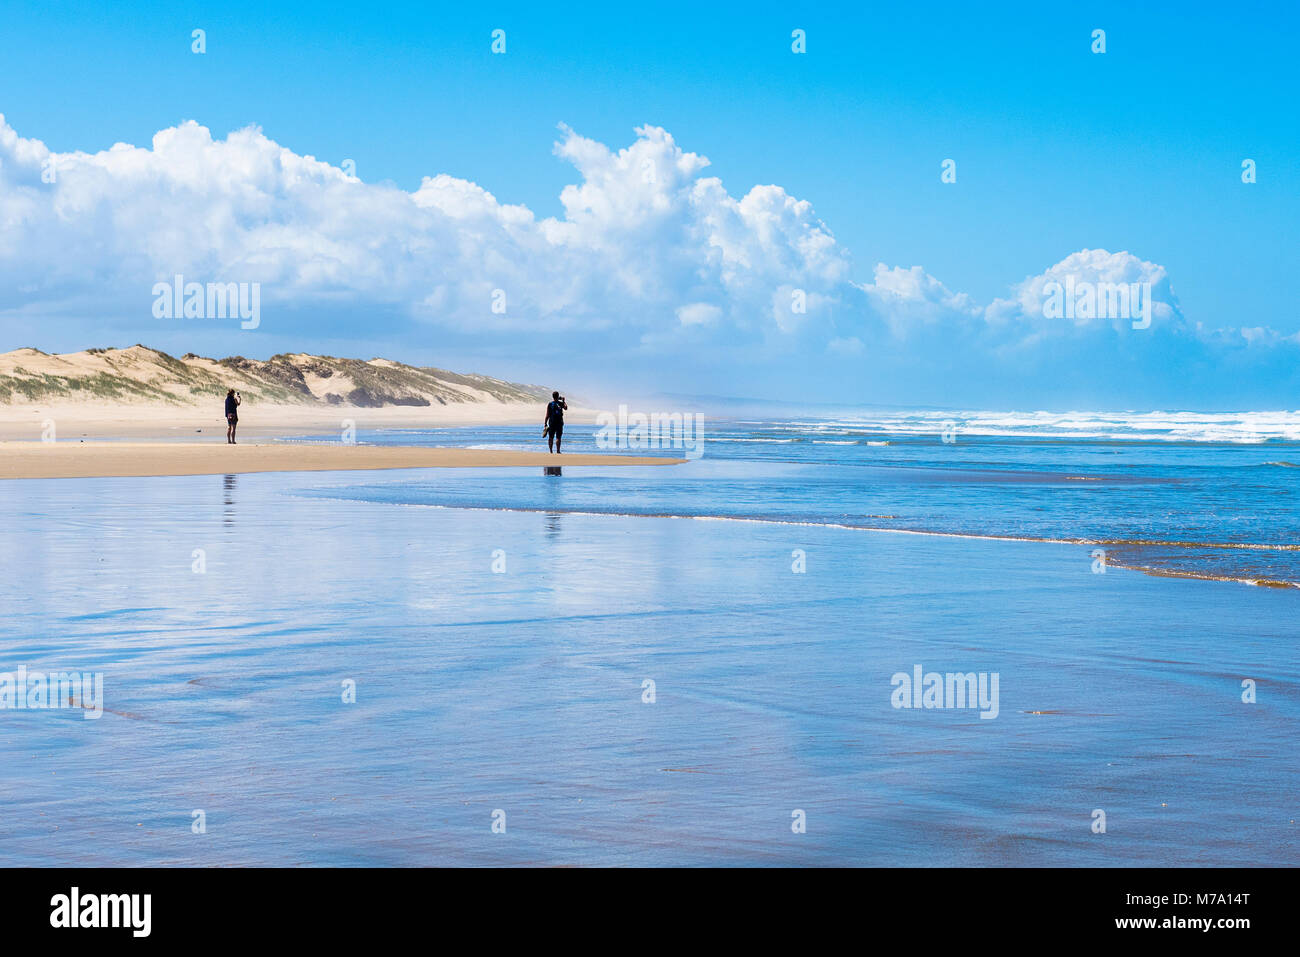 Walkers on Ninety Mile Beach, North Island, New Zealand Stock Photo